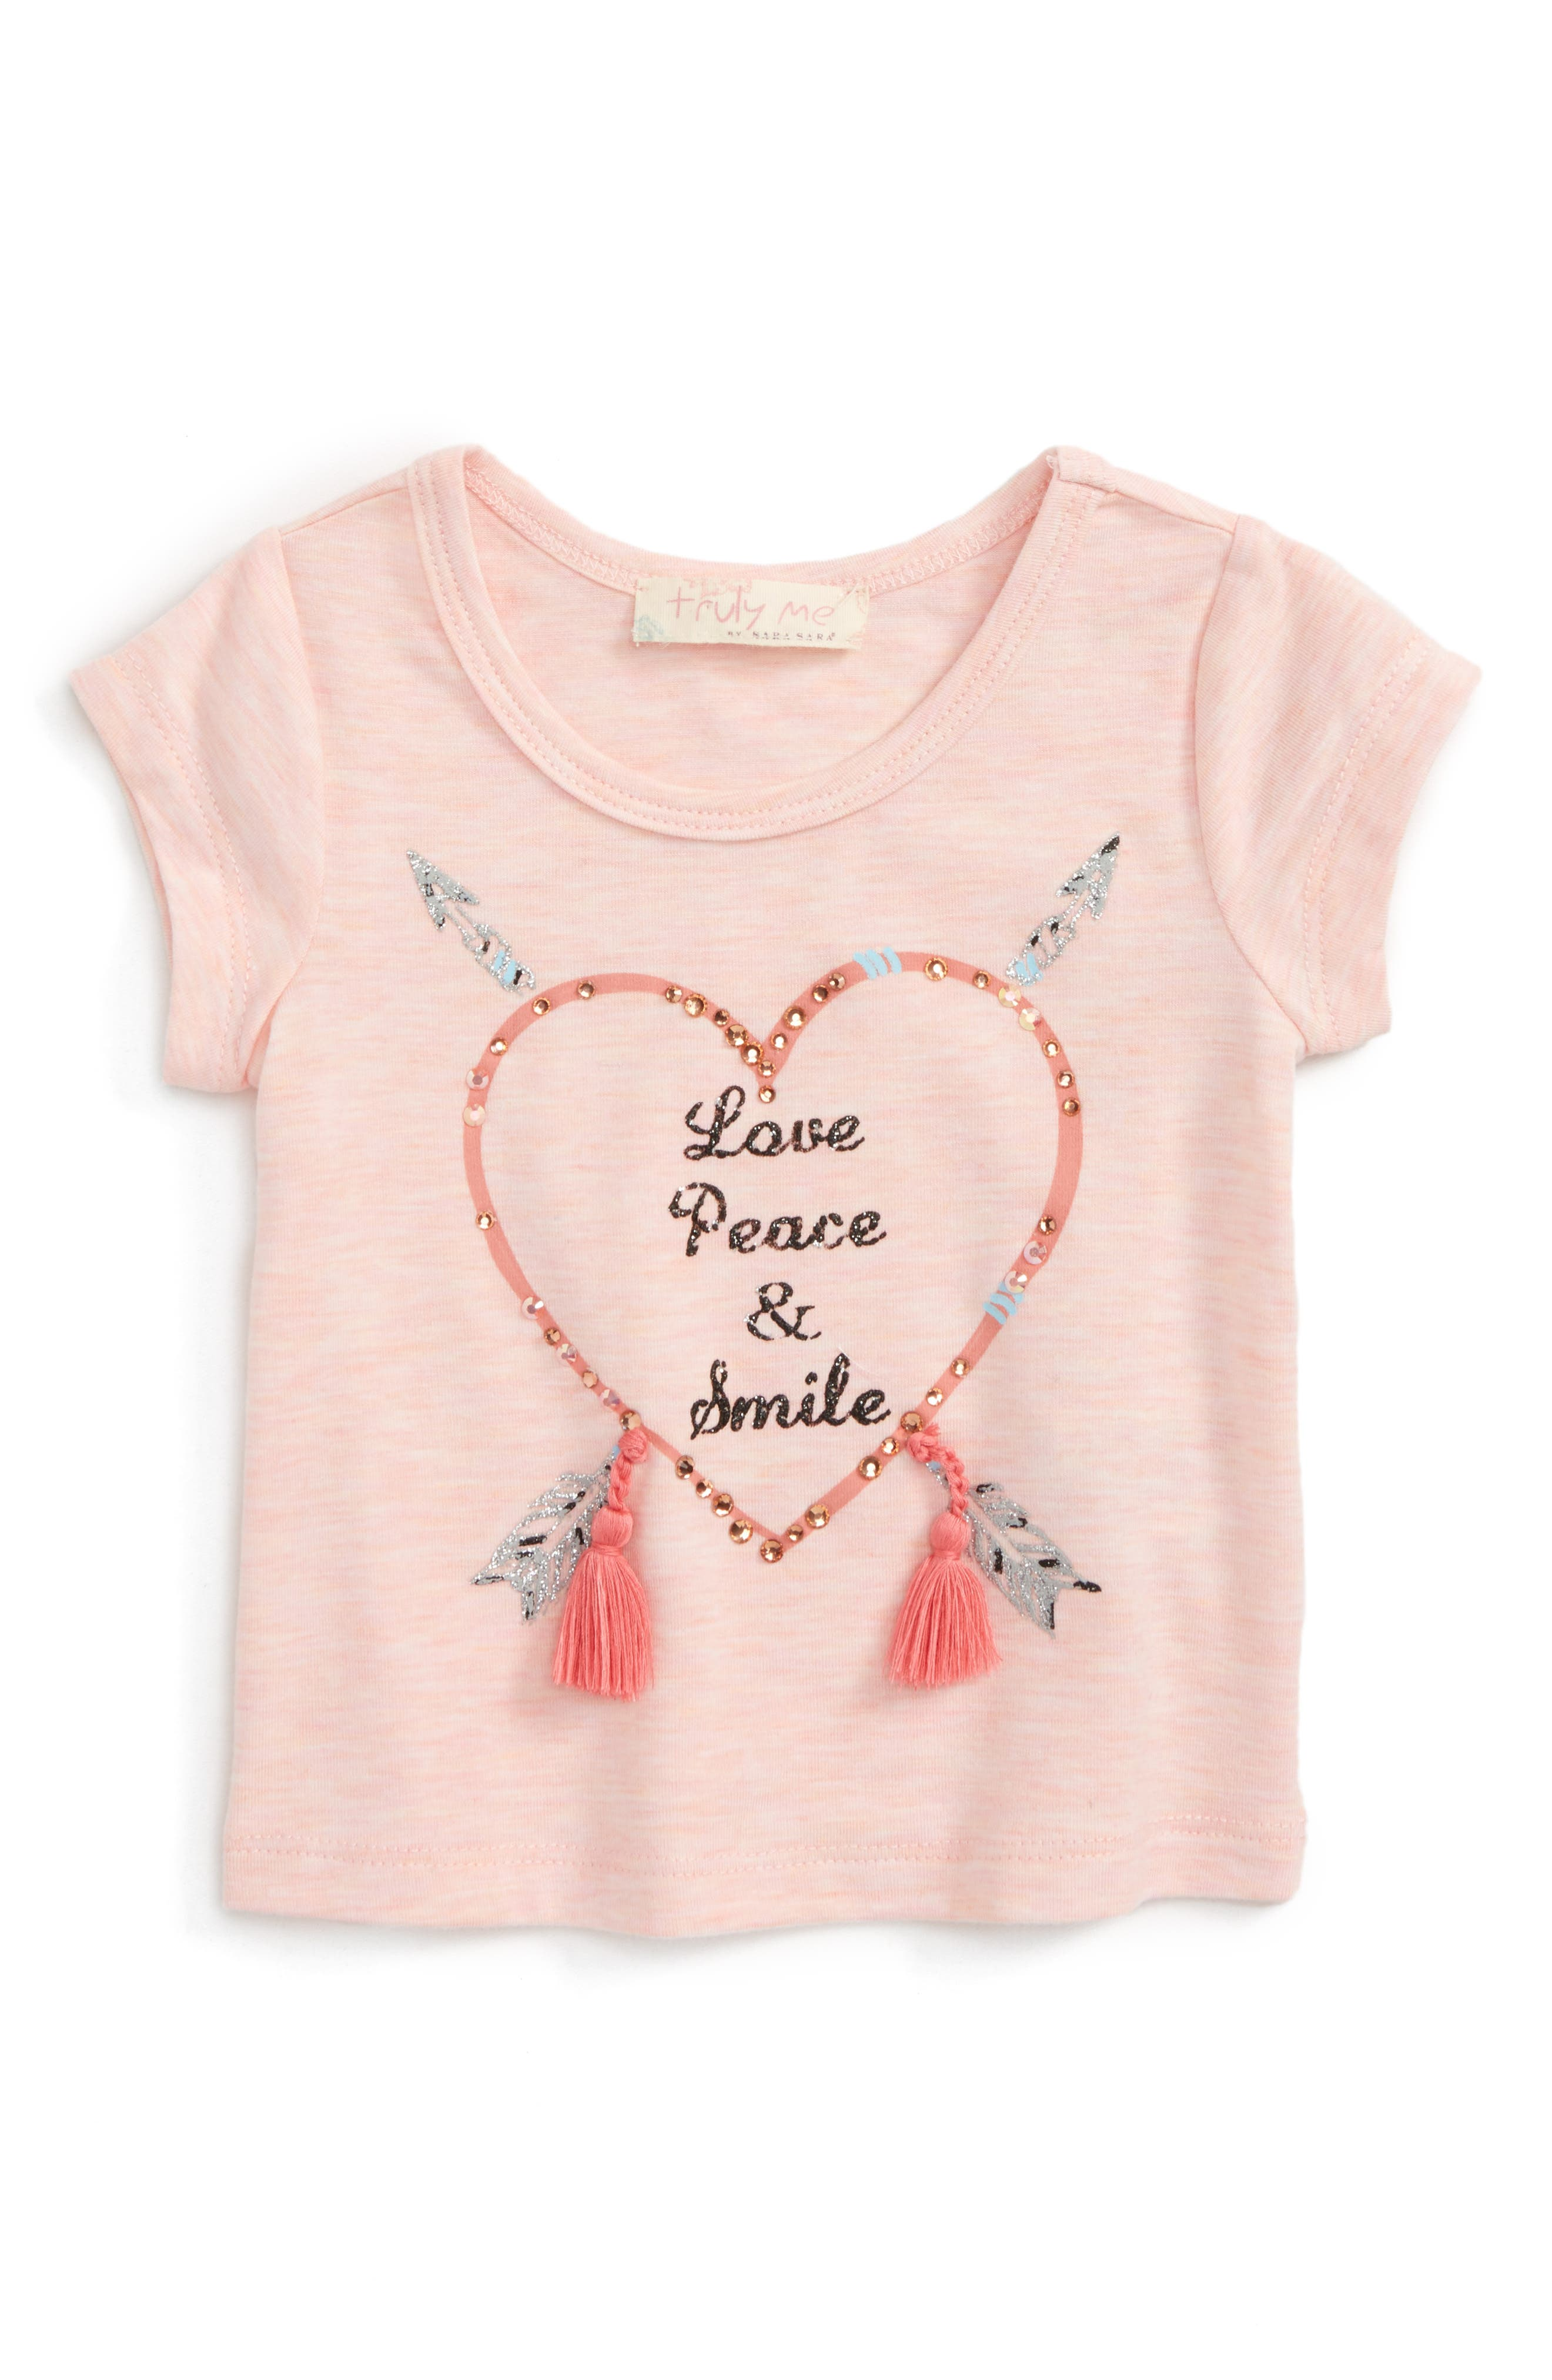 Love Peace Smile Tee,                         Main,                         color, Light Pink